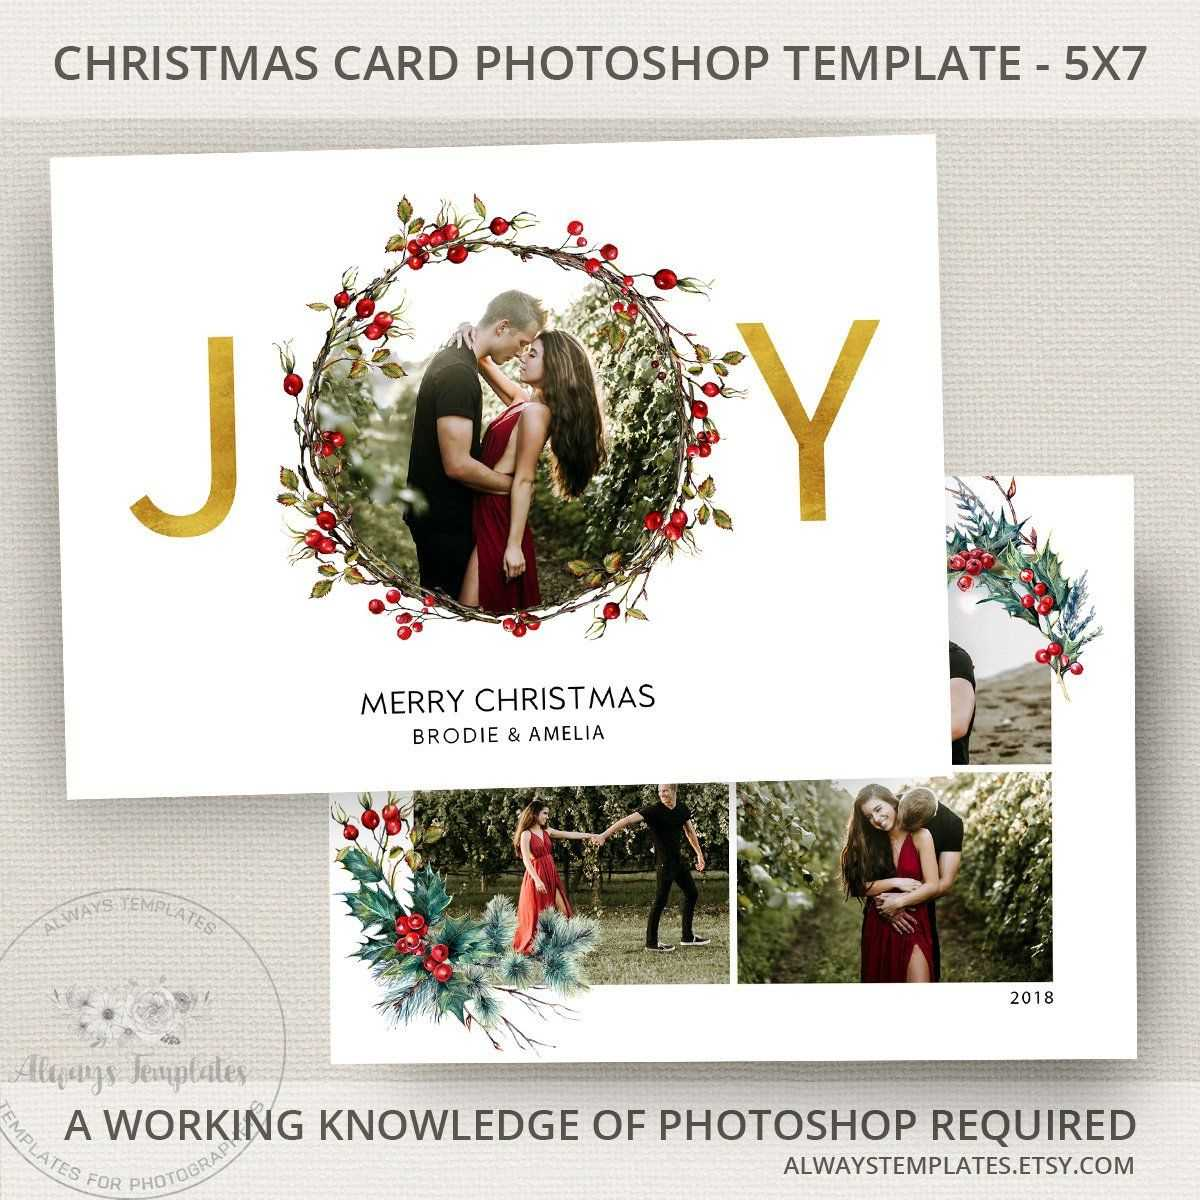 010 Template Ideas Photoshop Christmas Card Templates With Regard To Free Christmas Card Templates For Photoshop